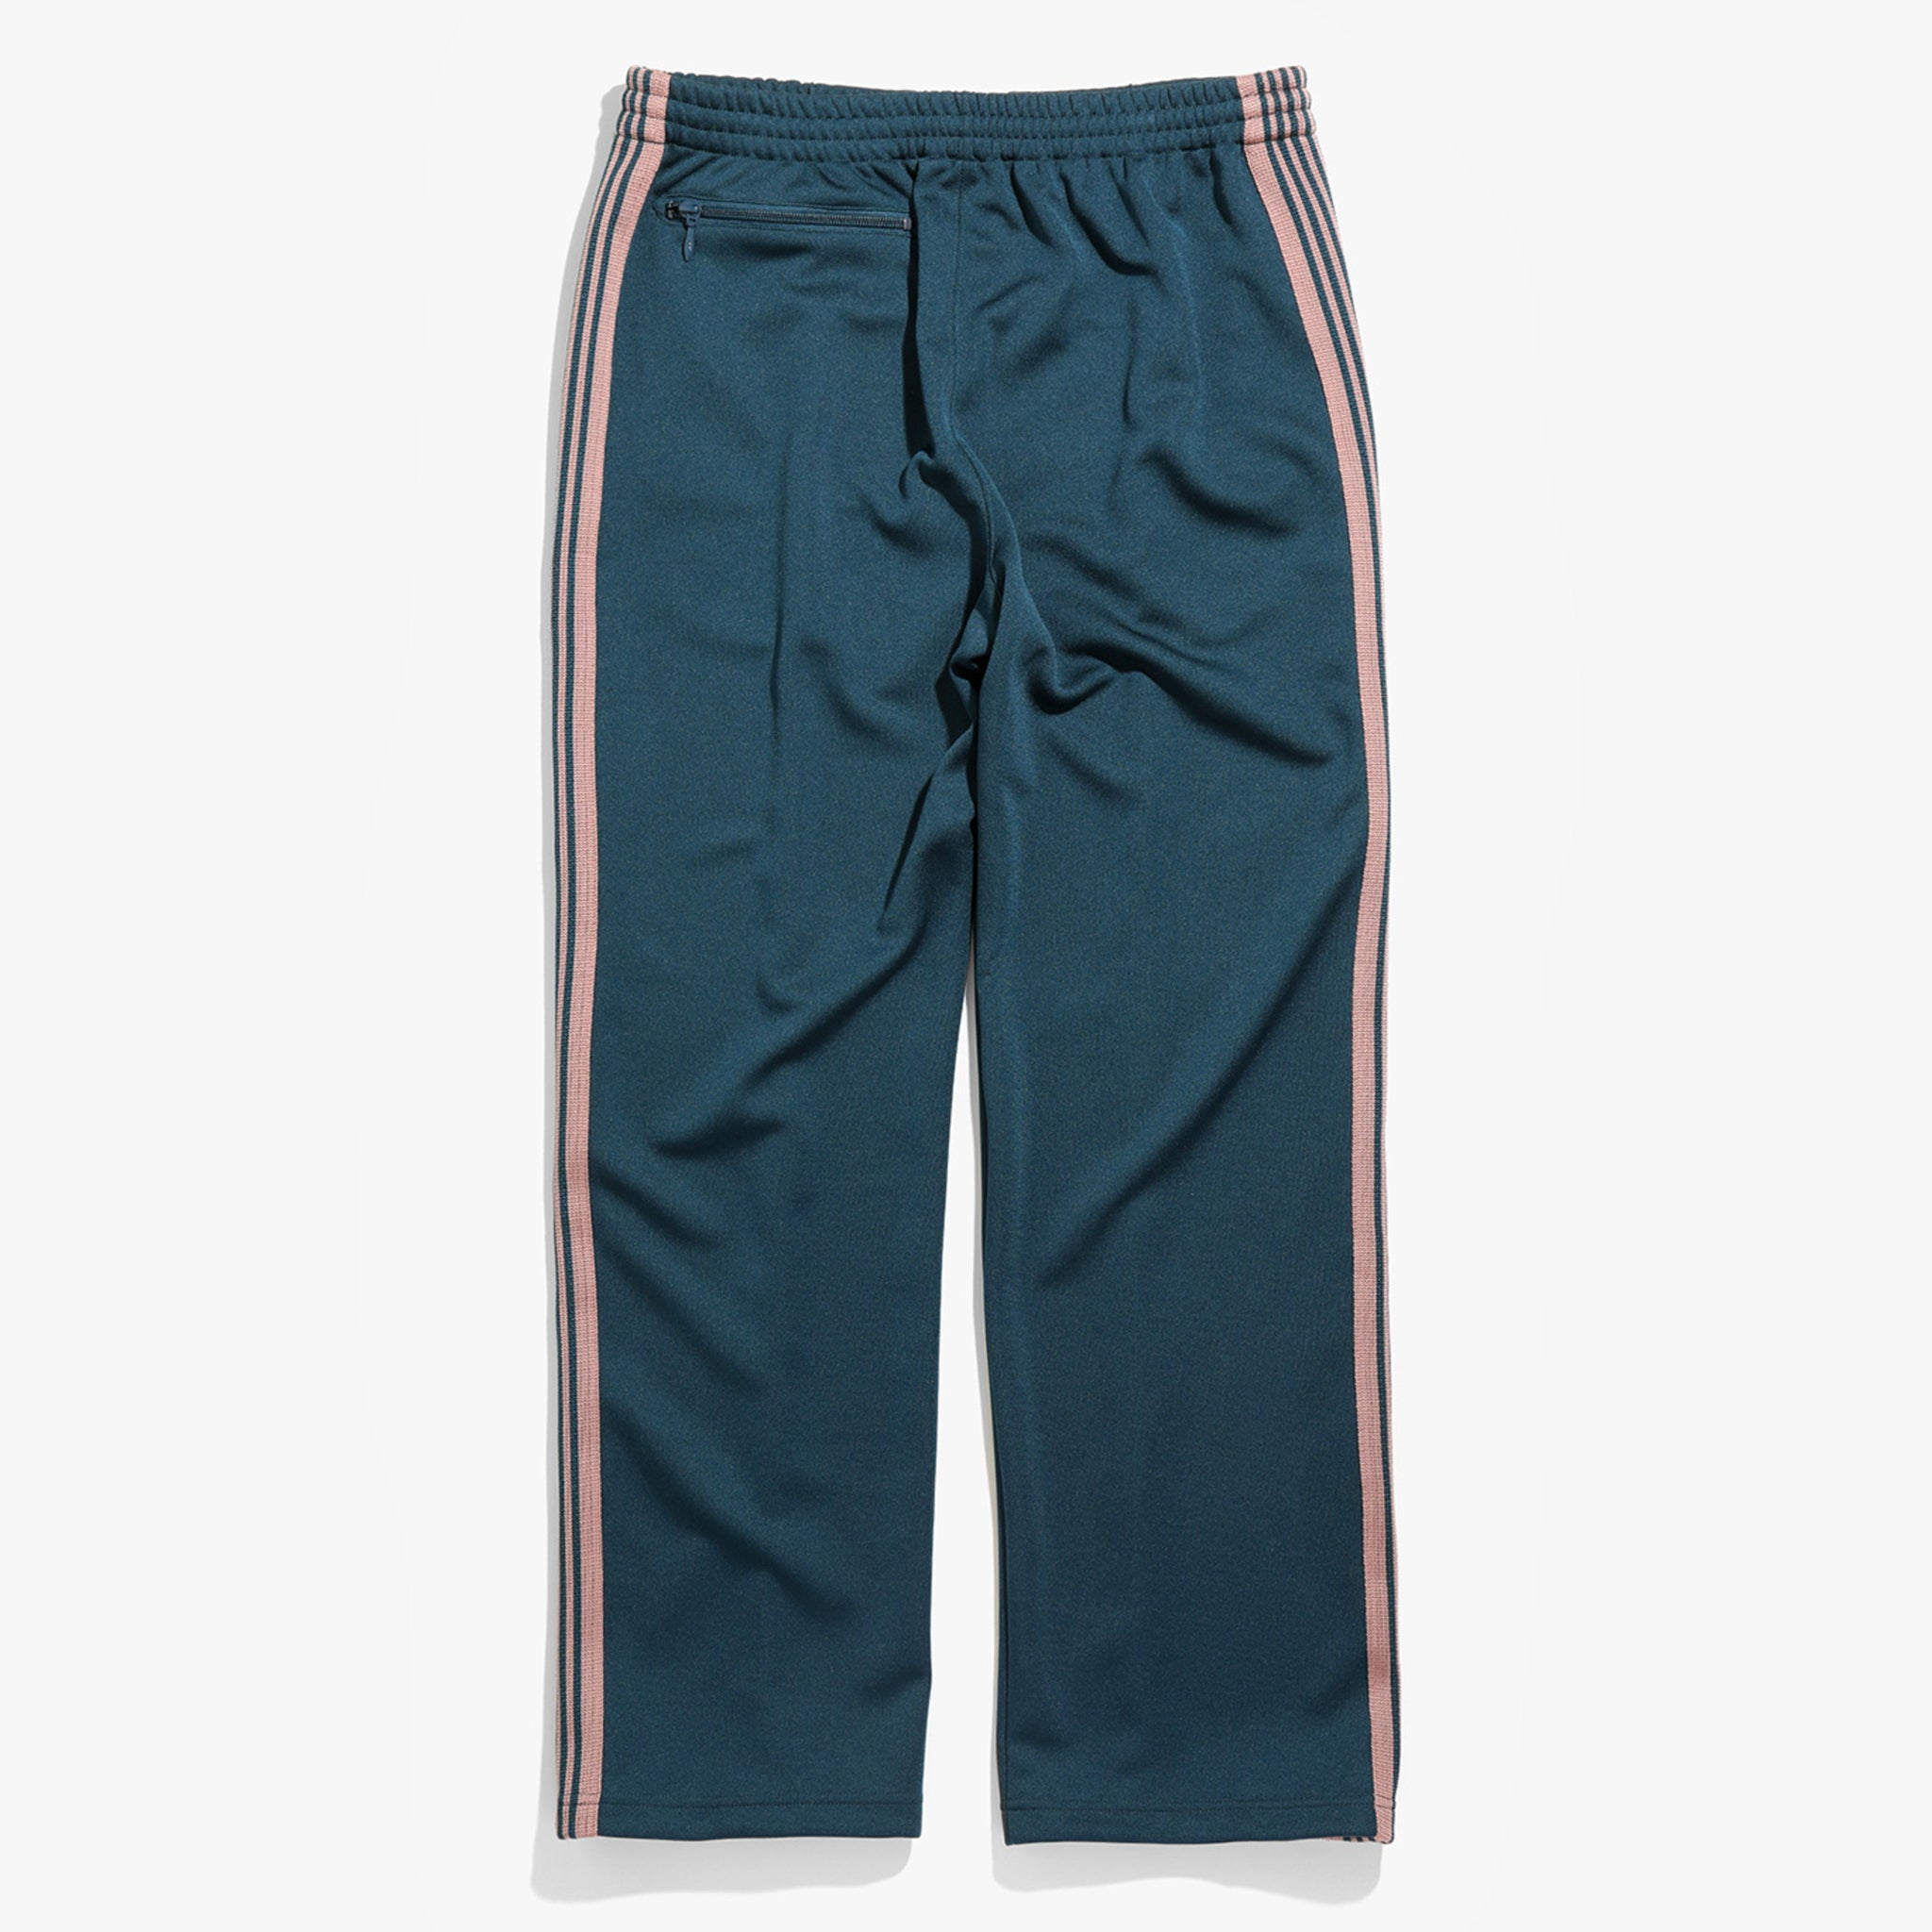 Track Pants (Teal Green)